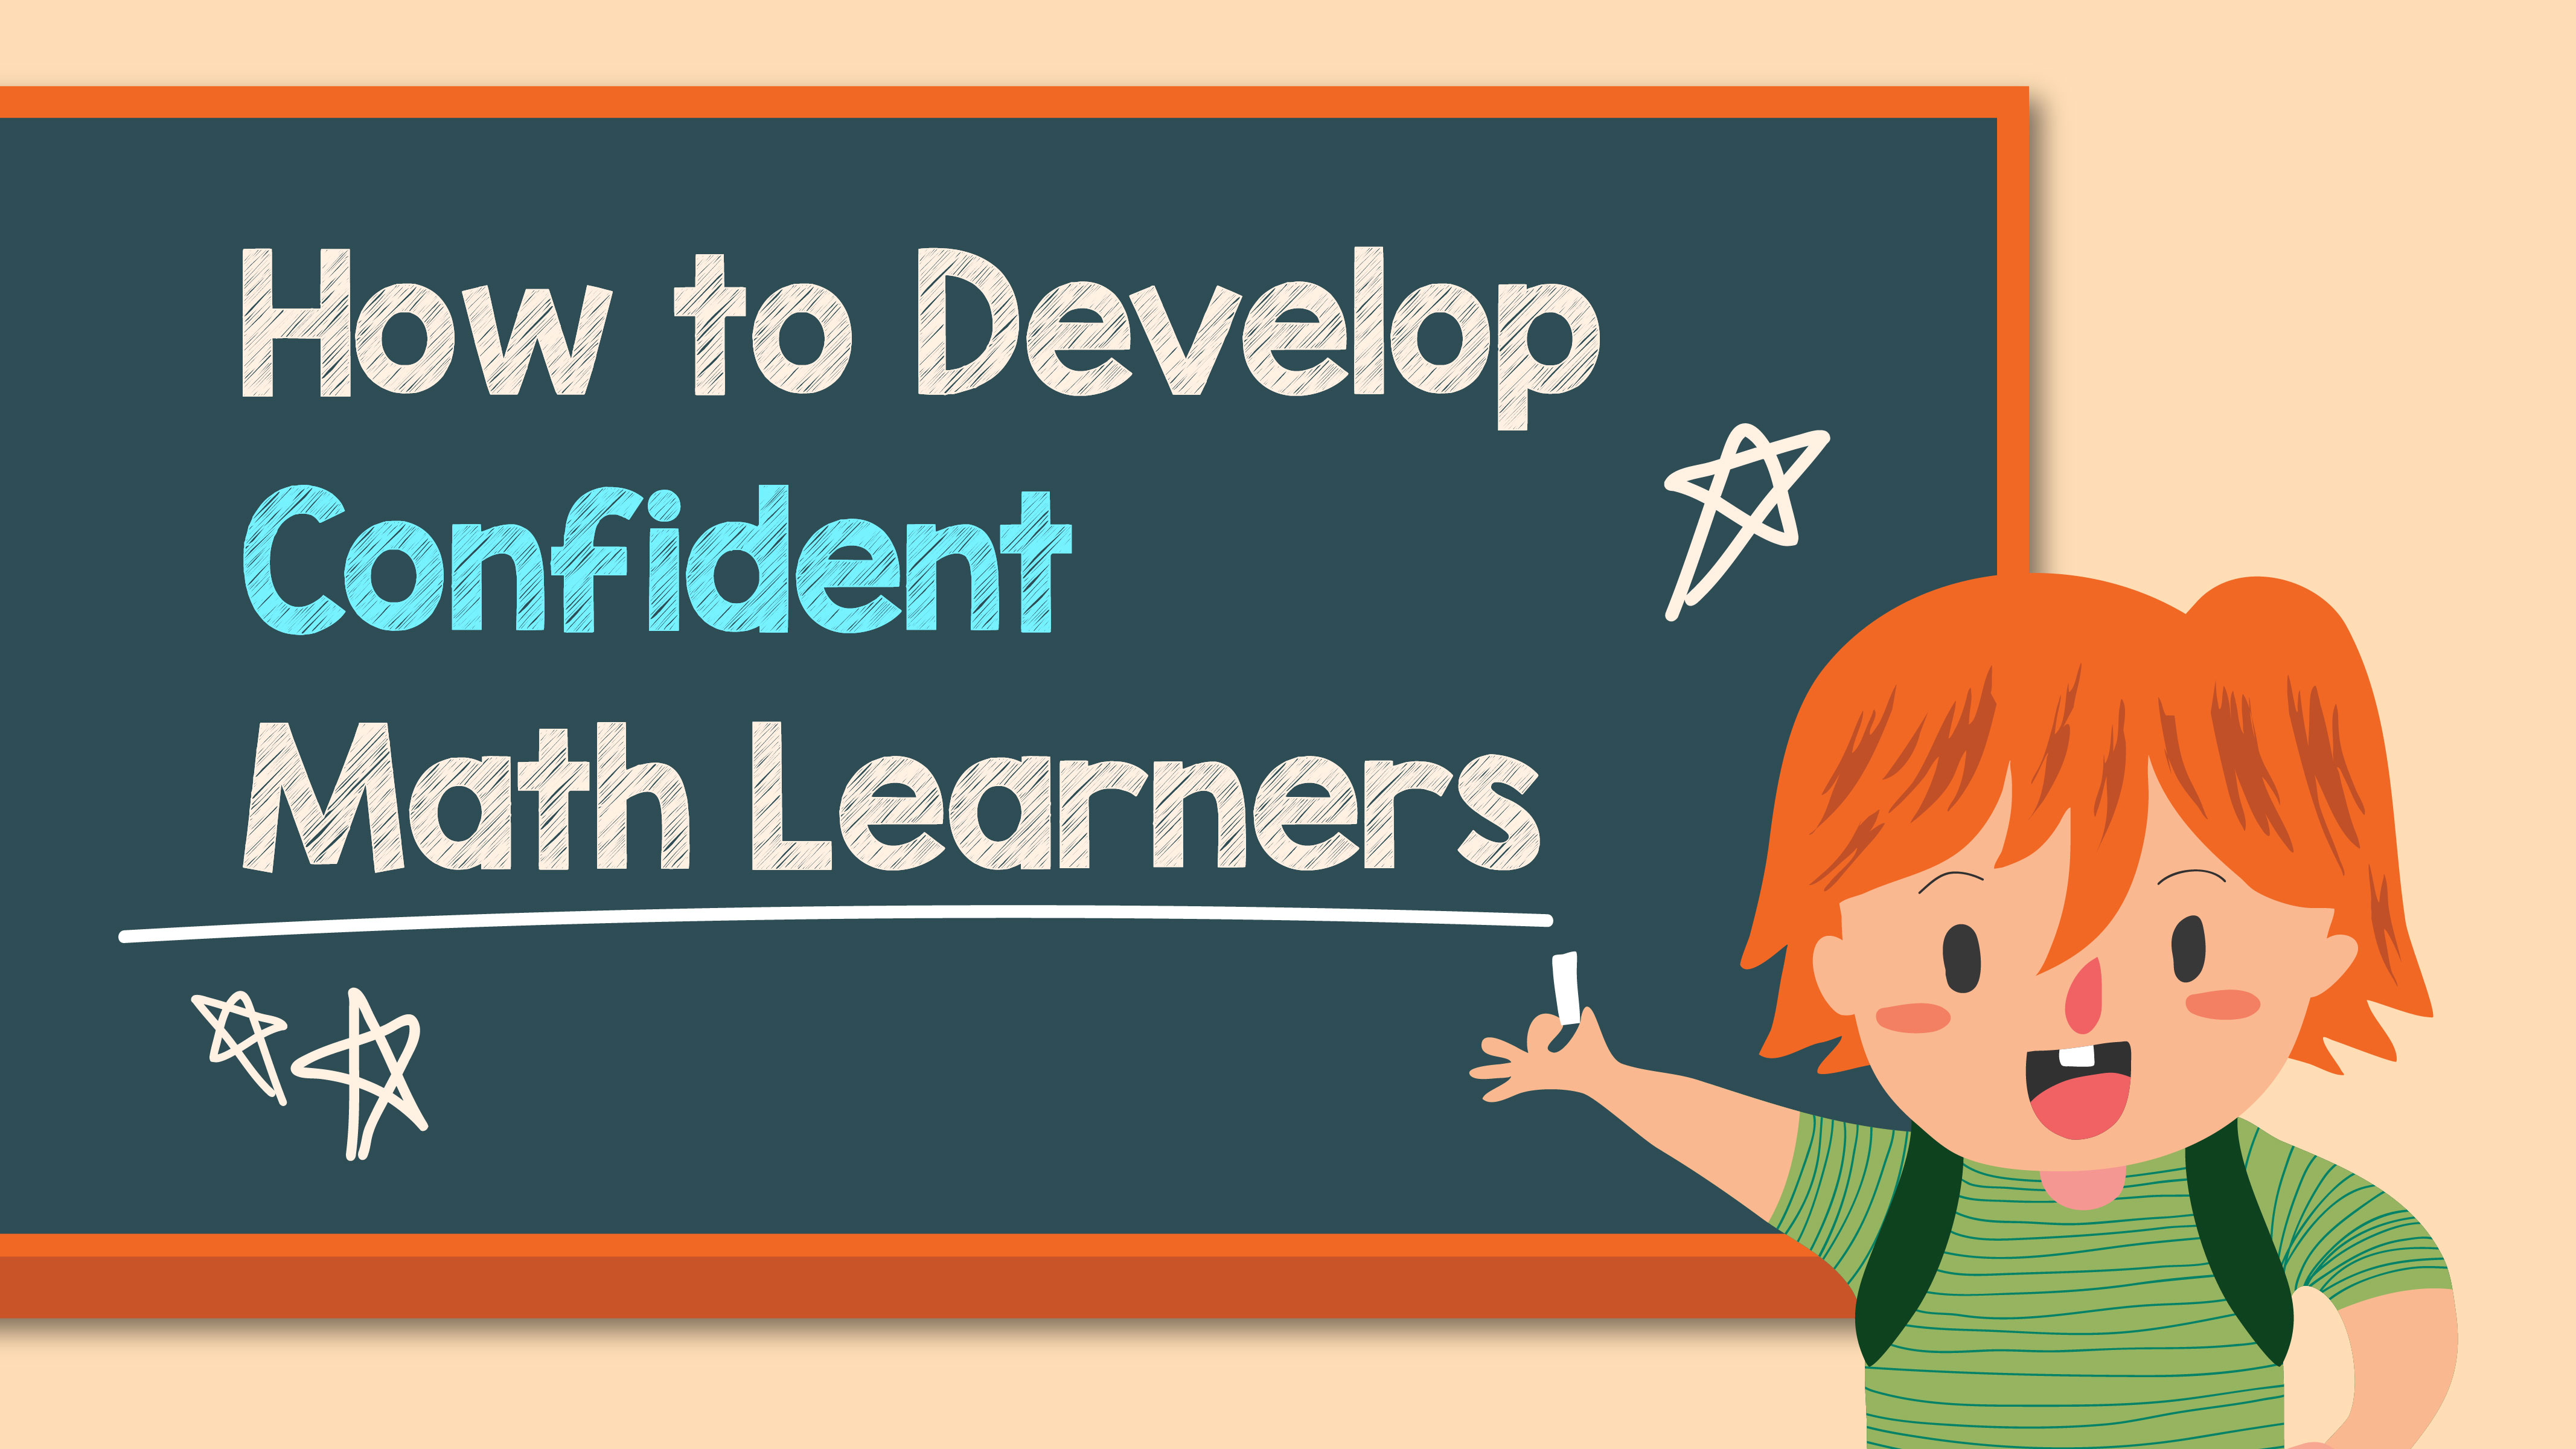 How to Develop Confident Math Learners